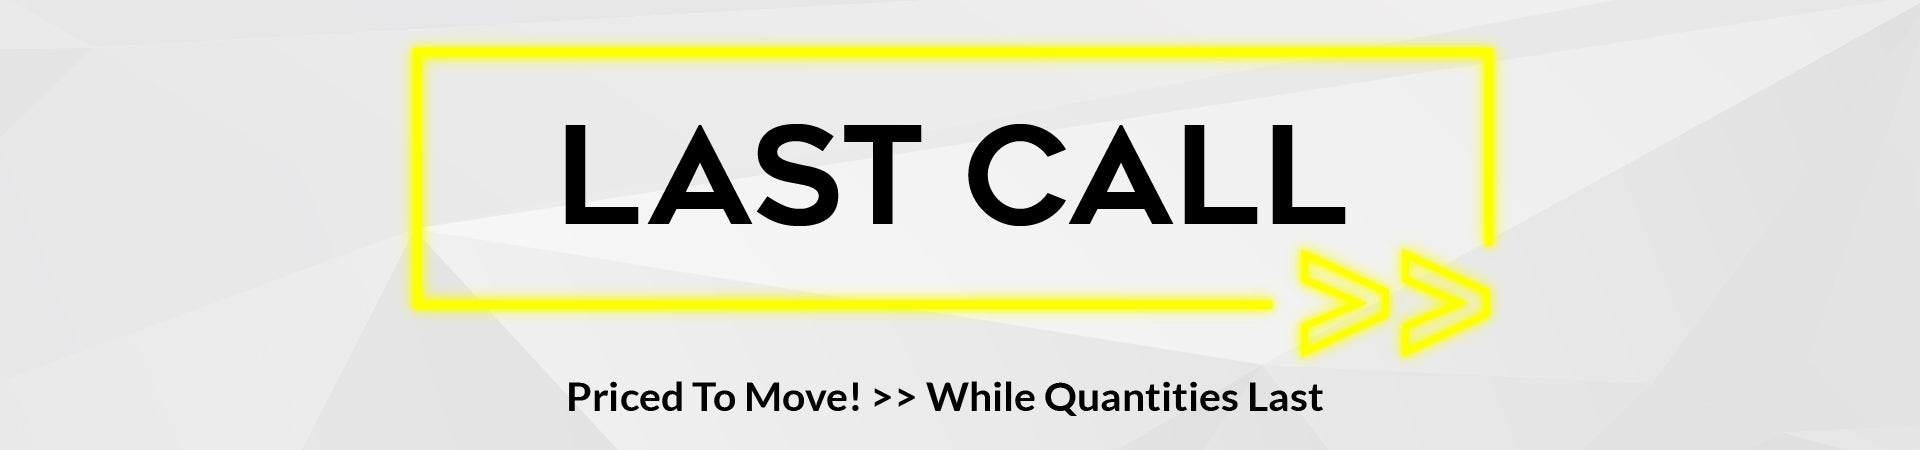 SVP Last Call - Priced To Move. While Quantities Last.